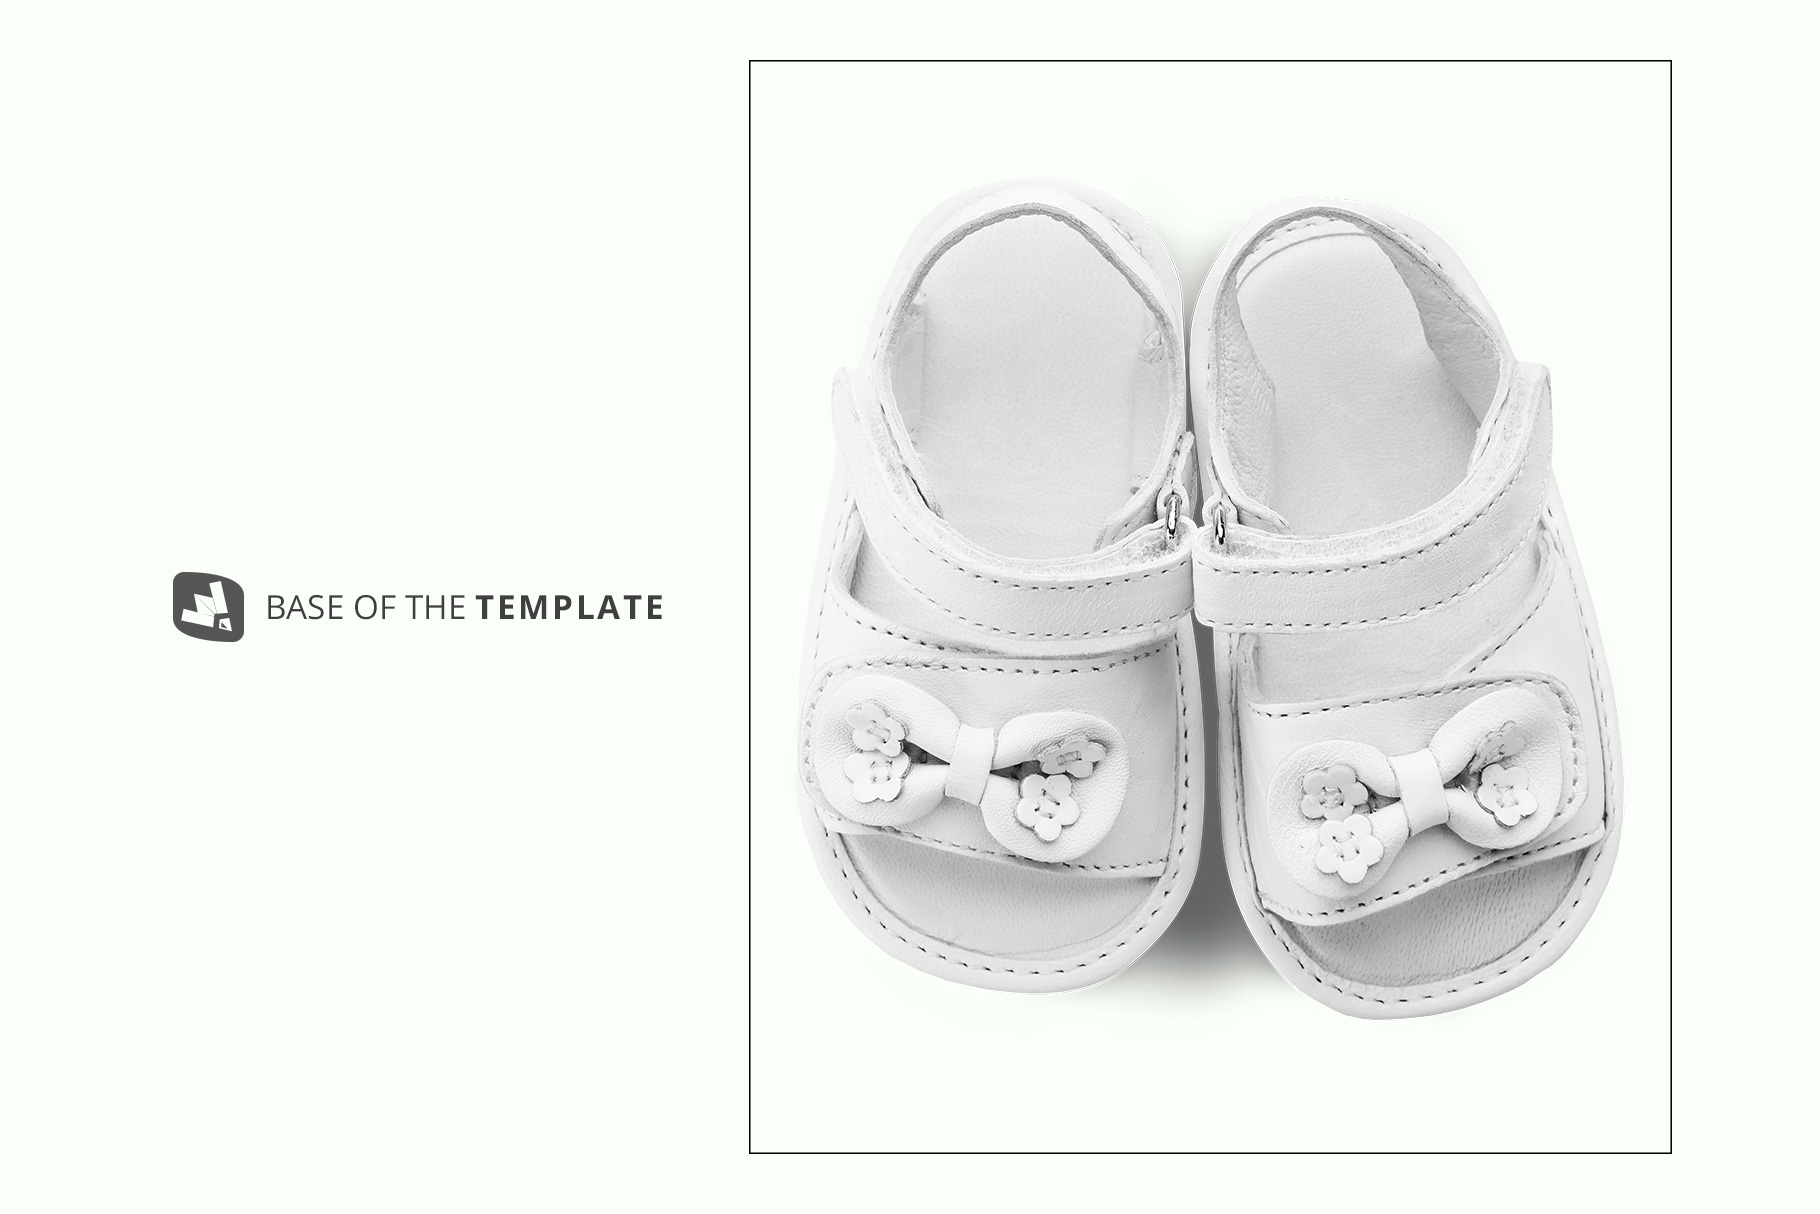 base image of the topview baby sandals with bow mockup